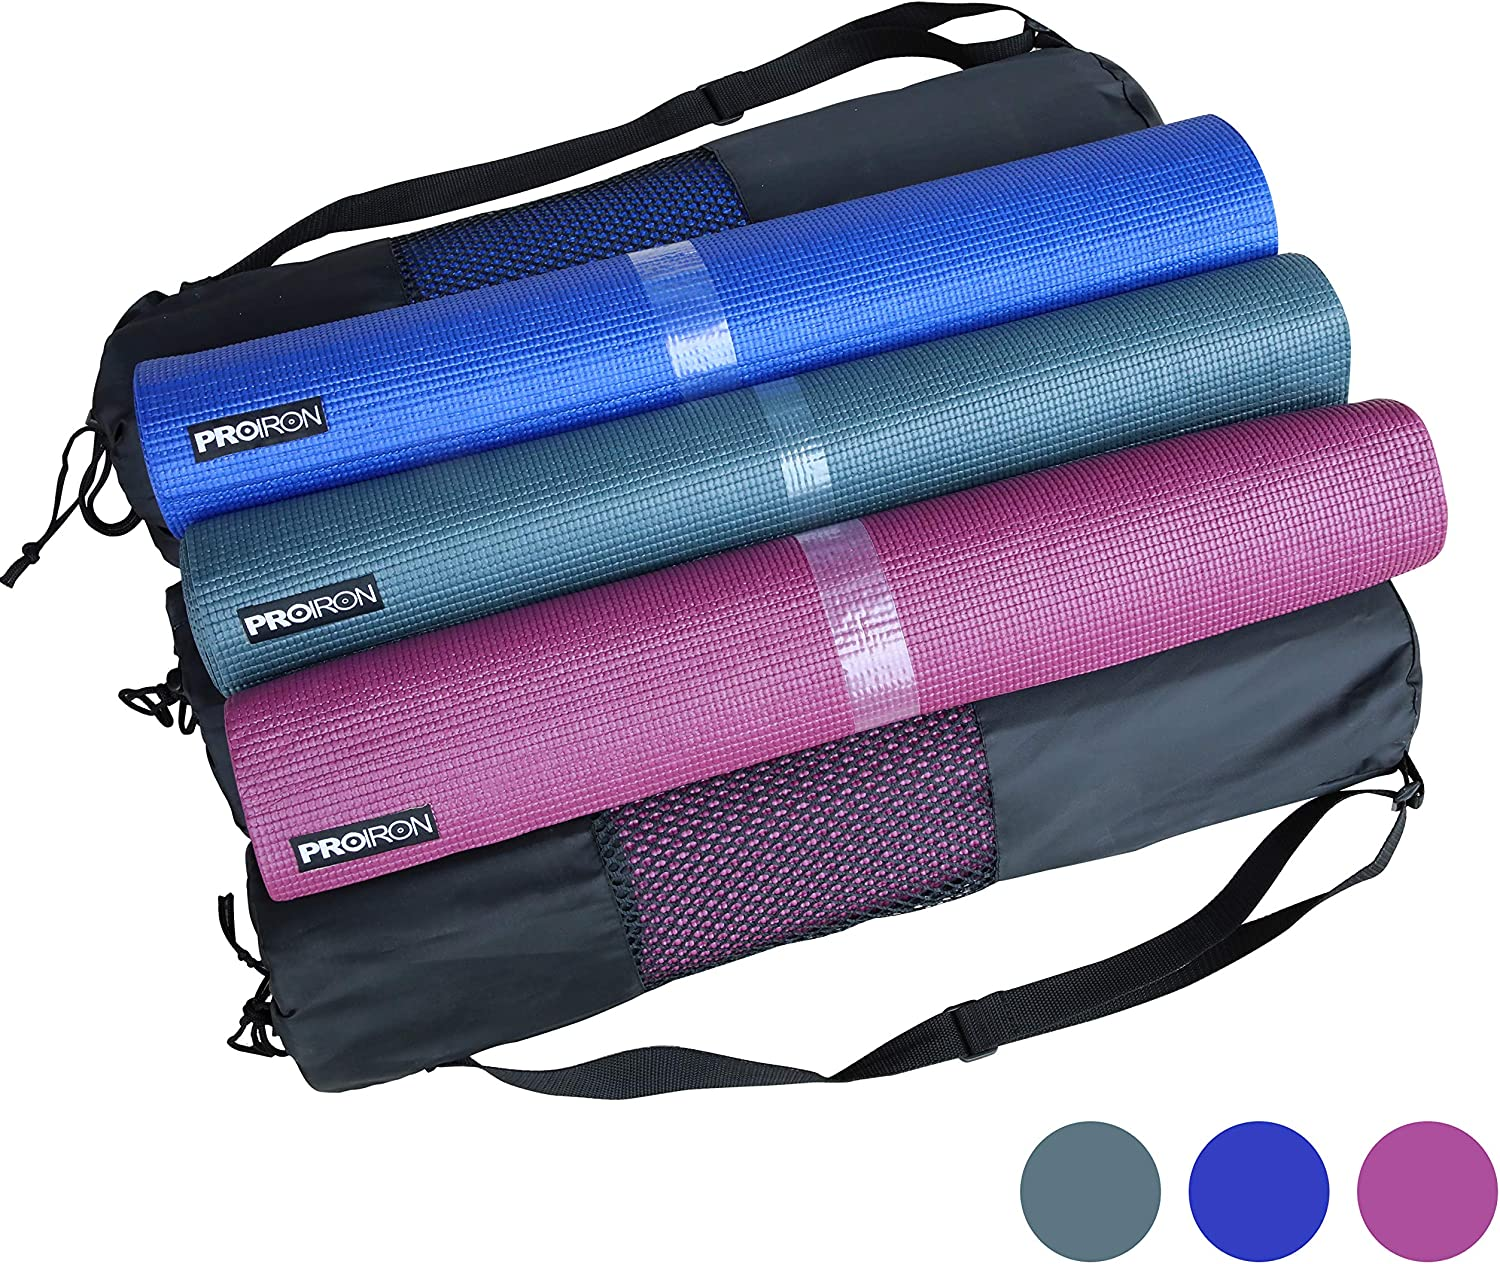 Purple PROIRON Yoga Mat Exercise Mat with Free Travel Carry Bag for Home Gym Fitness 3.5mm or 6mm thick in Blue Dark Green